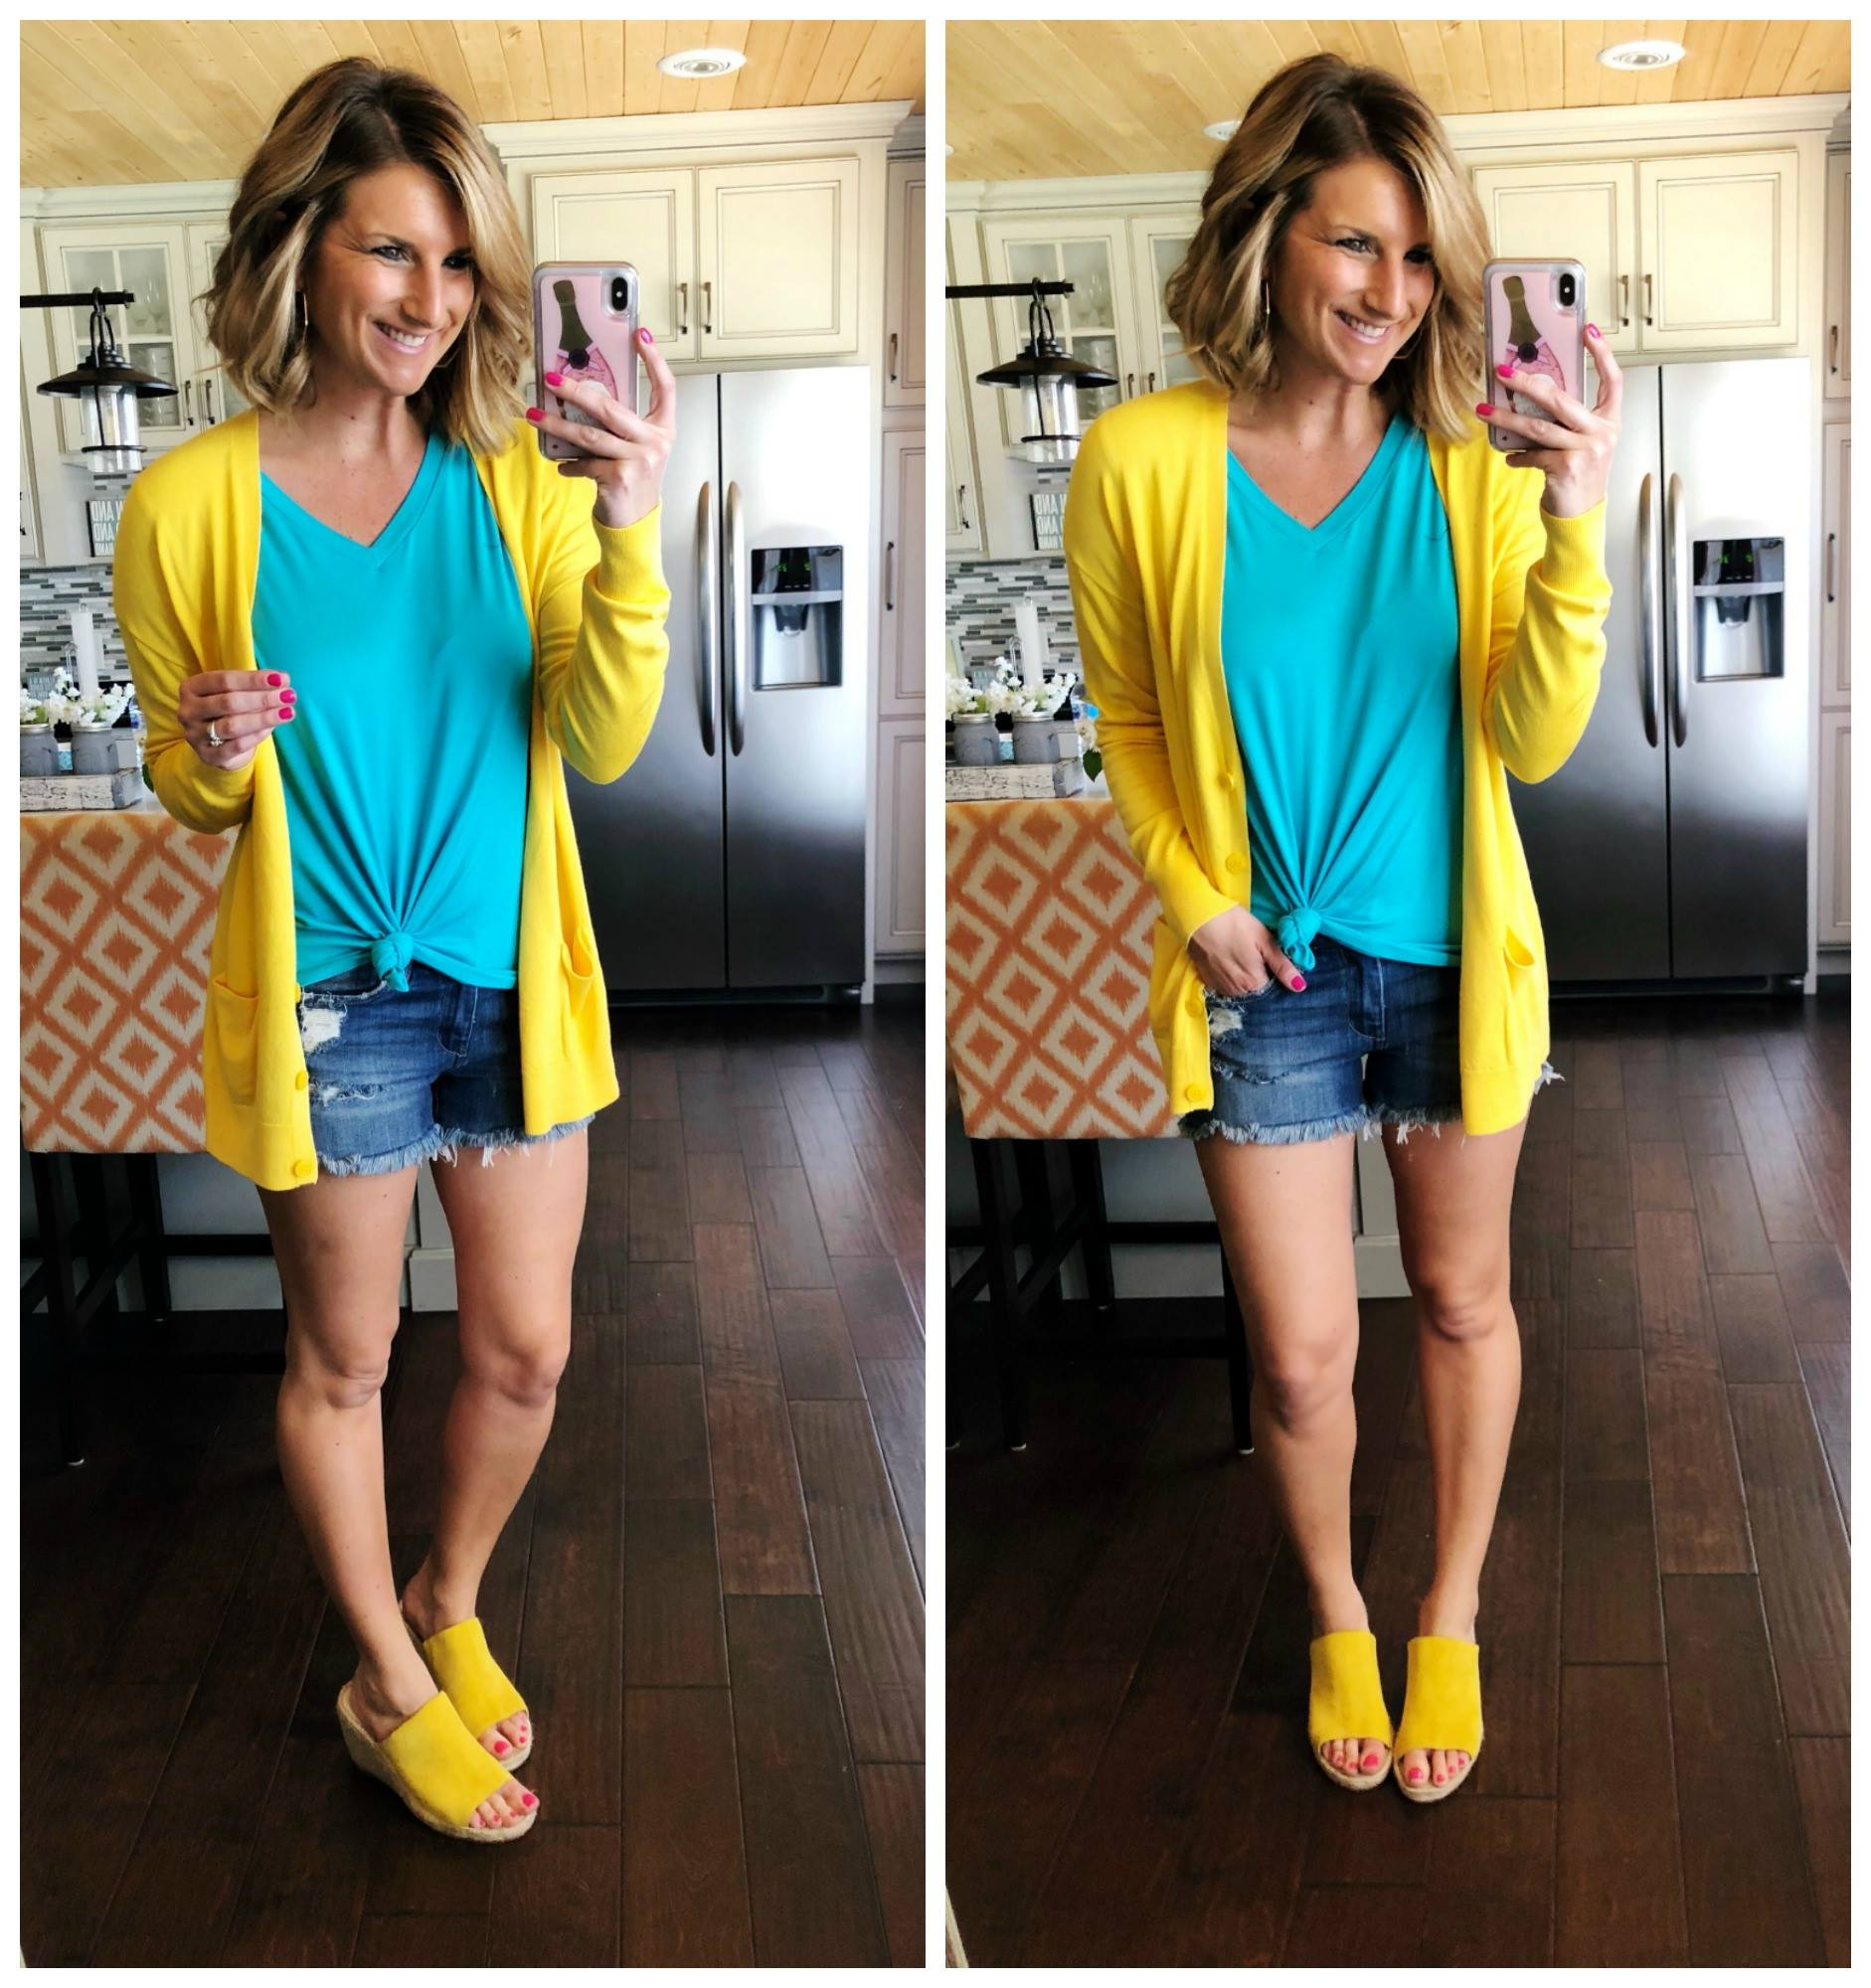 Casual Summer Outfit // How to Wear Bright Color Clothes // Perfect V Neck Top + Cut Off Shorts + Cardigan + Wedge Sandals